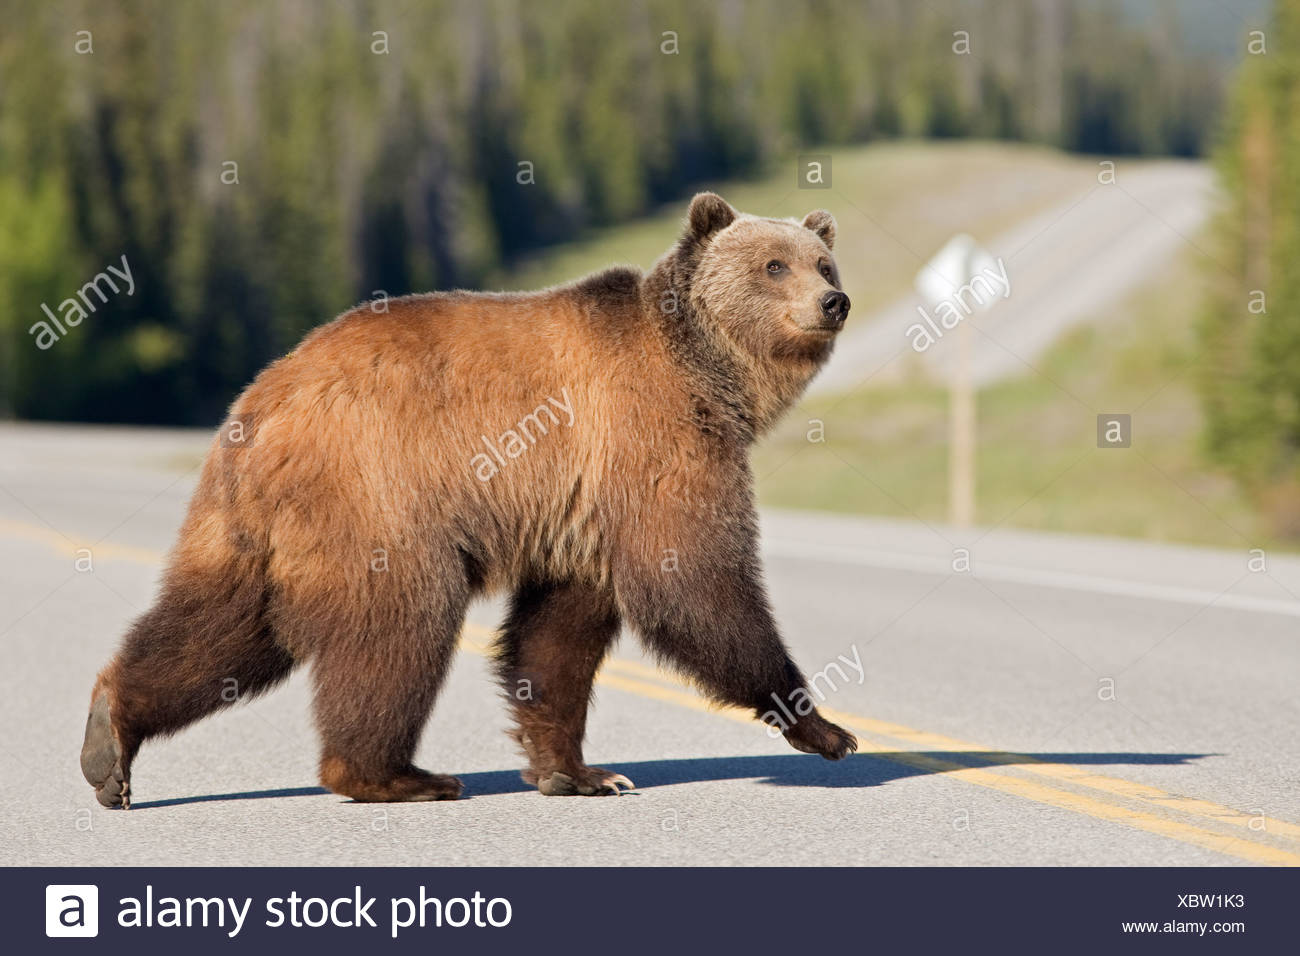 Grizzly bear (Ursus arctos horribilis) crossing Highway 11 near Timber Creek, Alberta, Canada - Stock Image